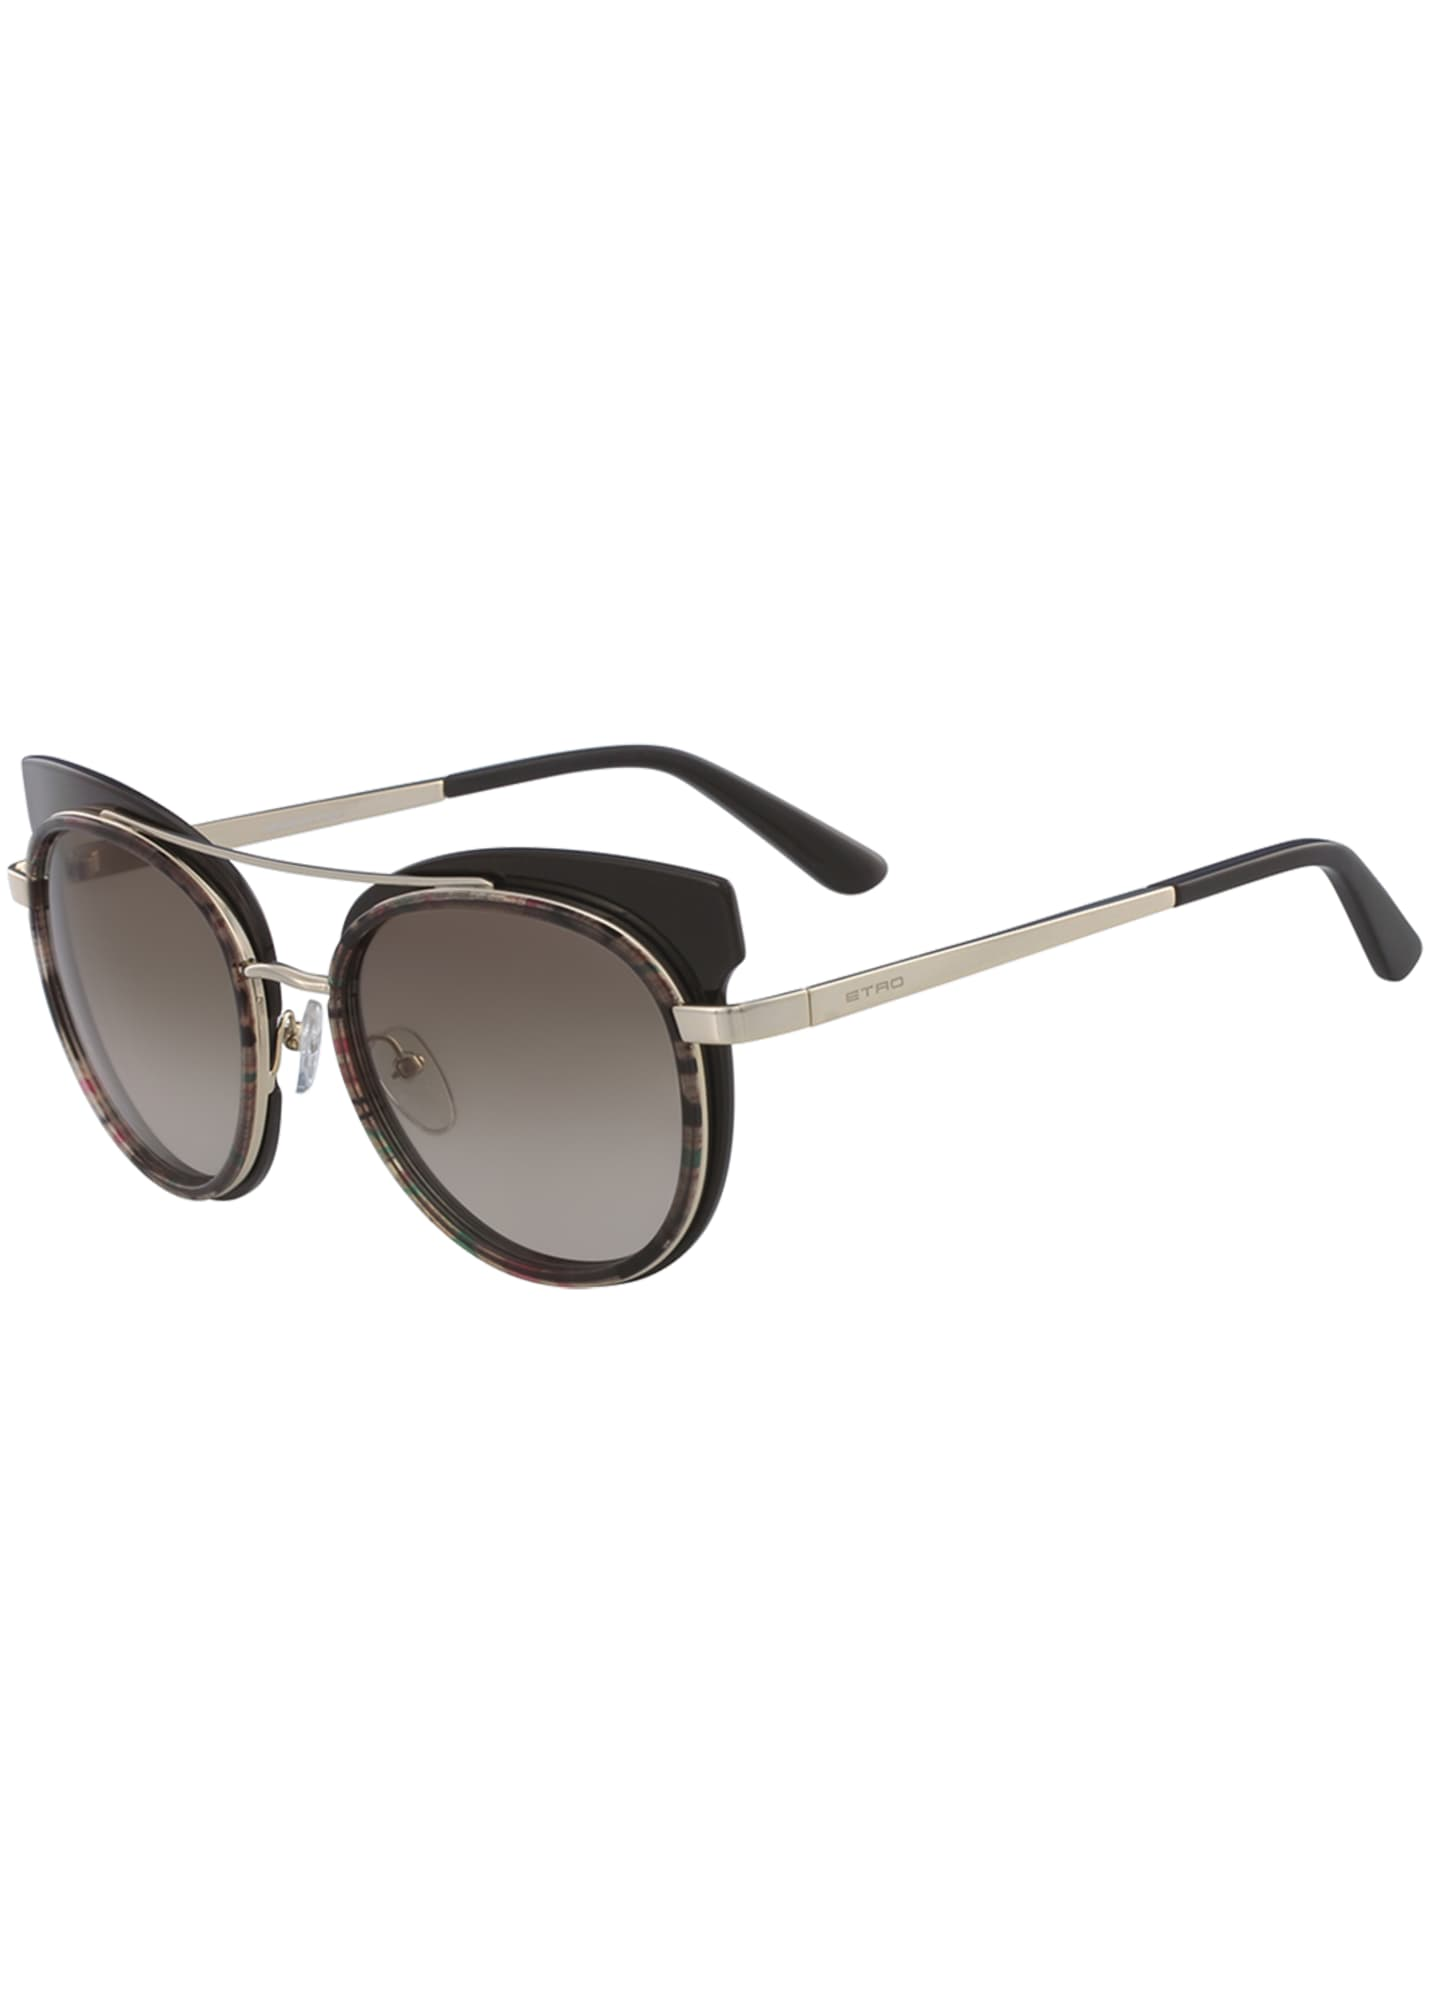 Etro Acetate & Metal Round Sunglasses